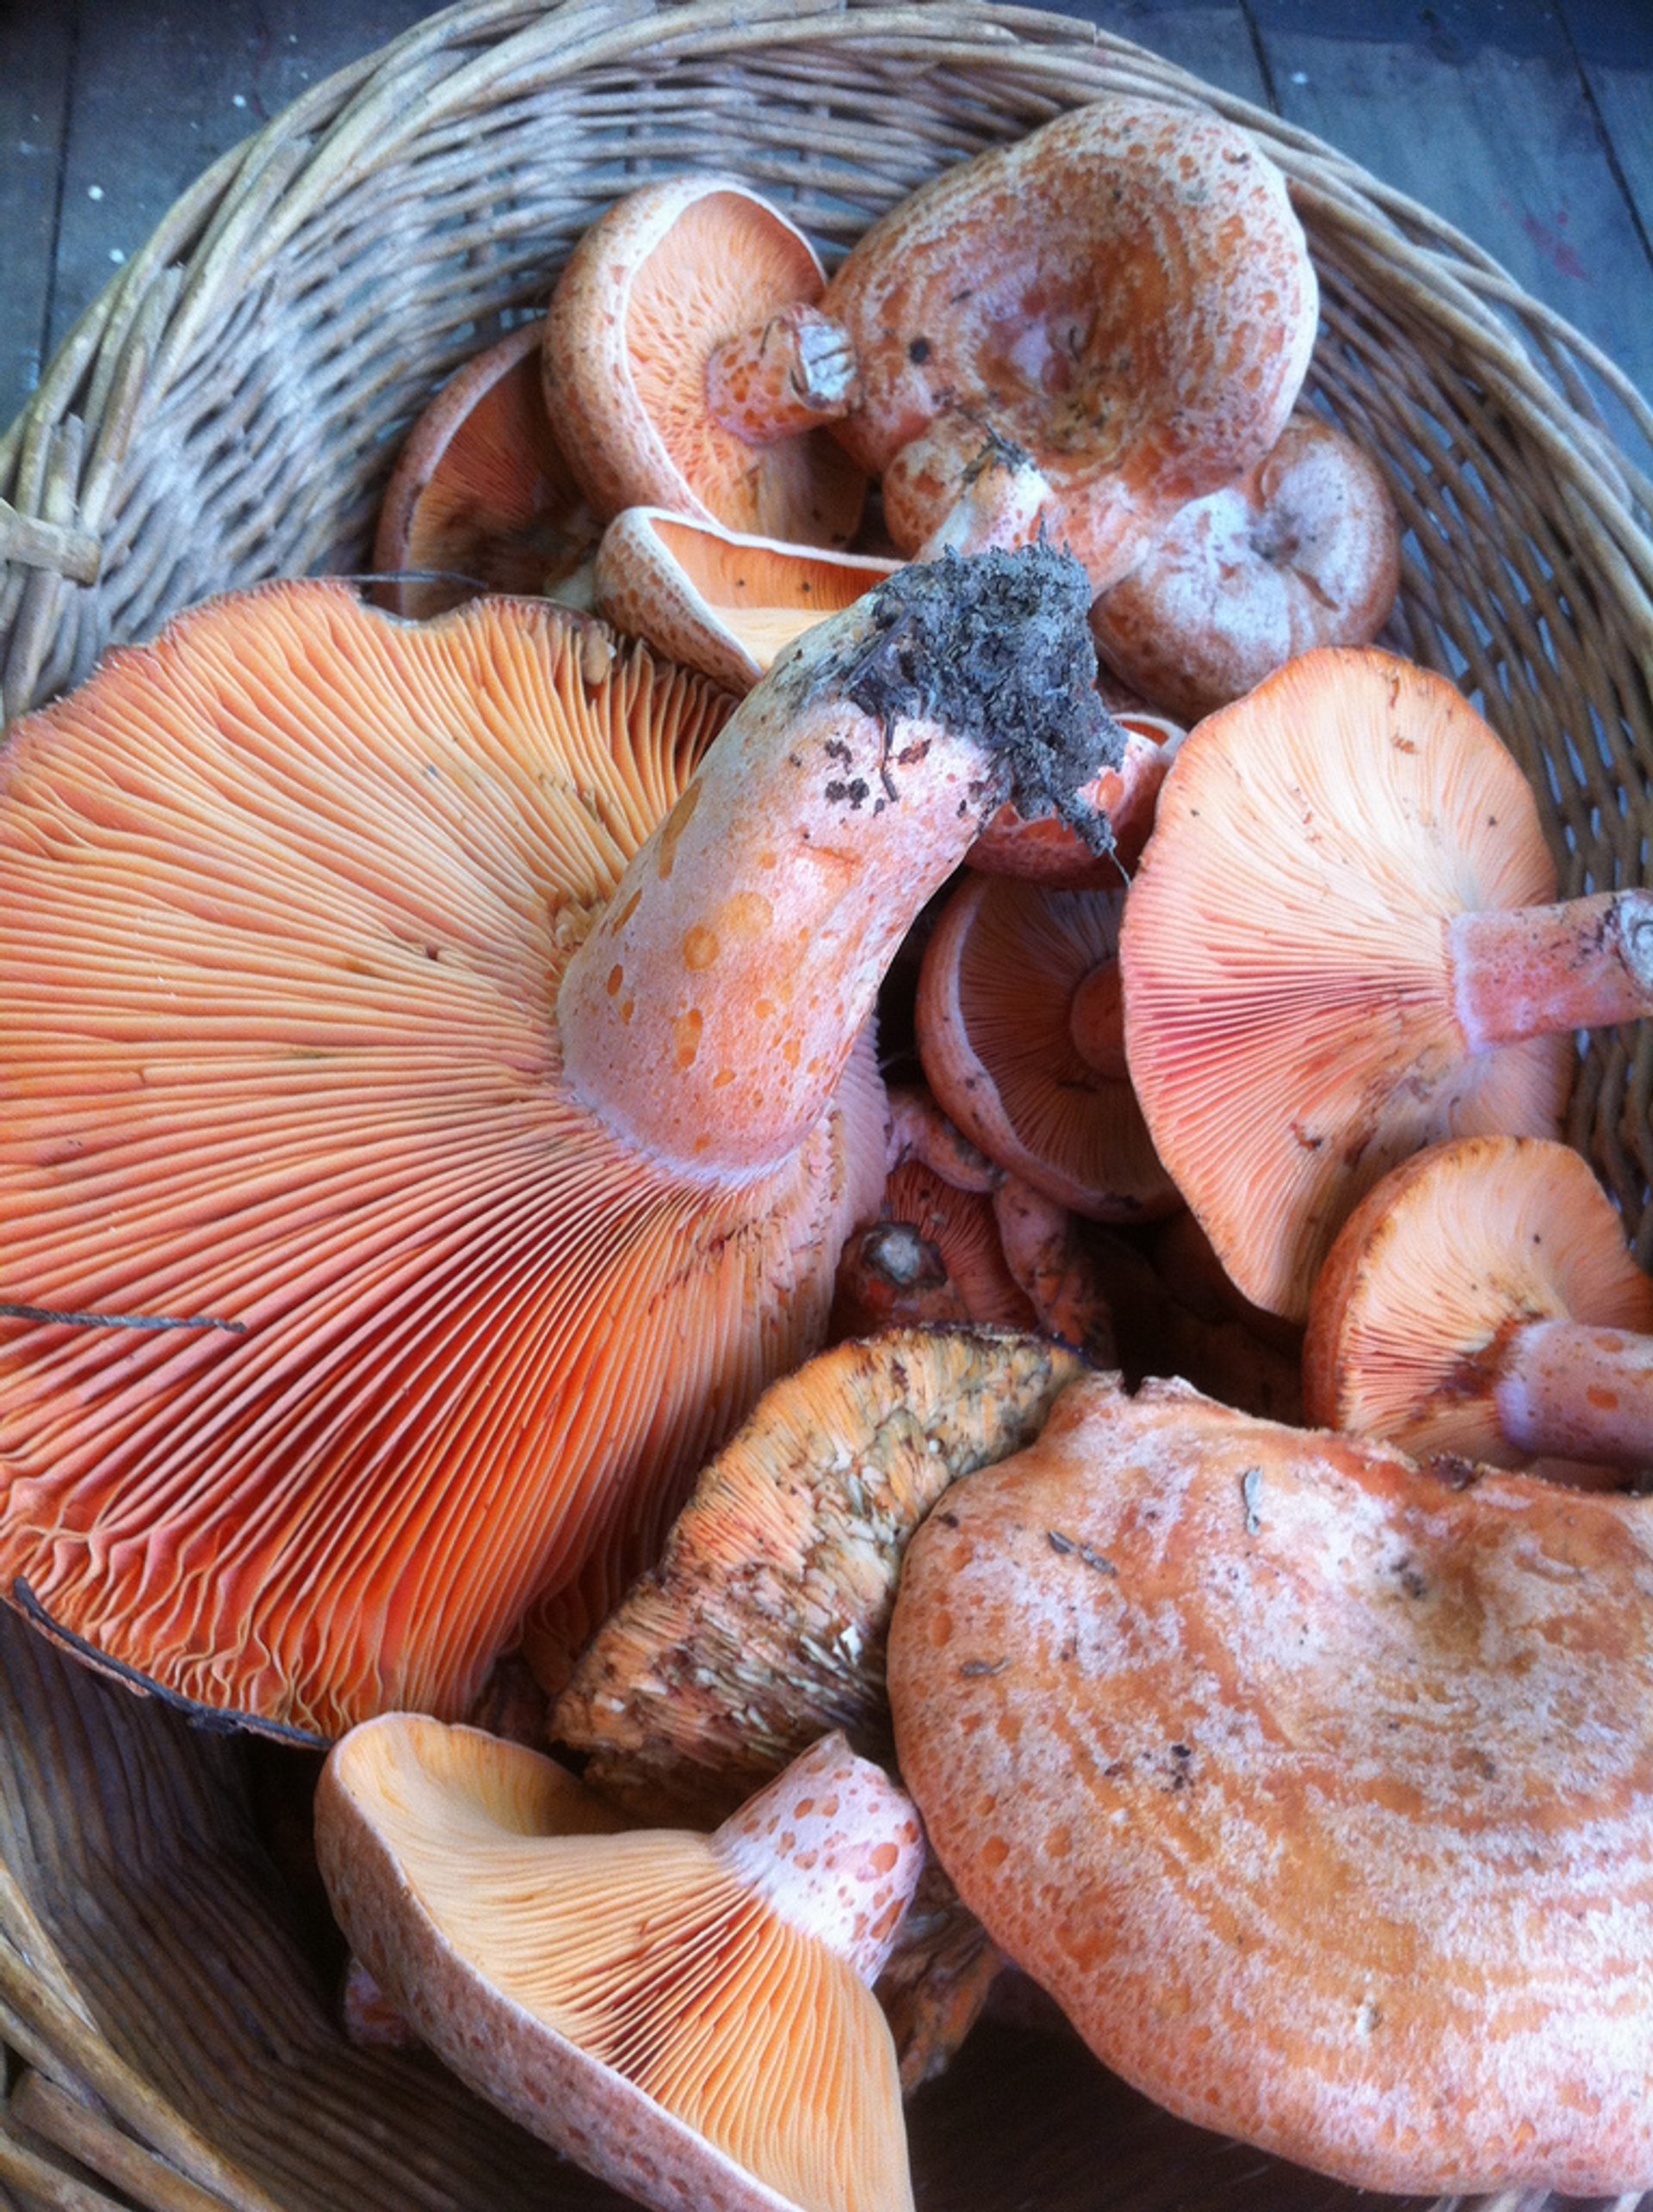 Pine Mushrooms (Saffron Milk Caps) in Australia - Best Season 2020